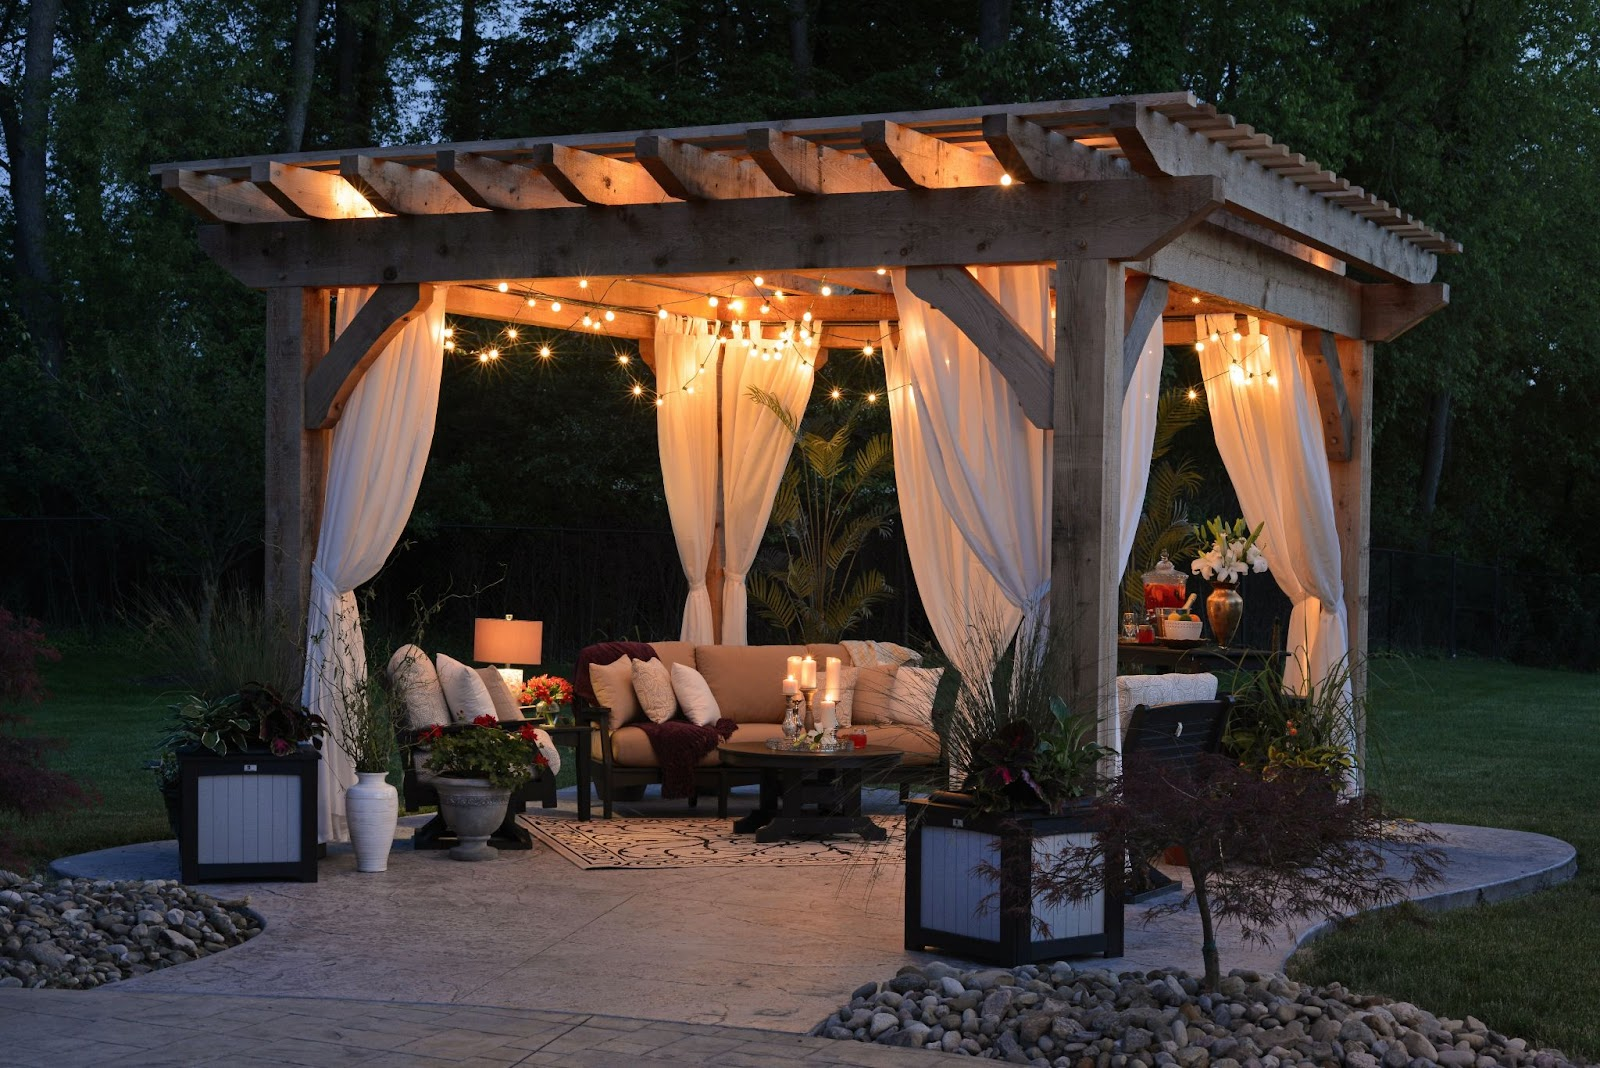 A terrace with sofas, candles, lights in a garden. Cozy environment.